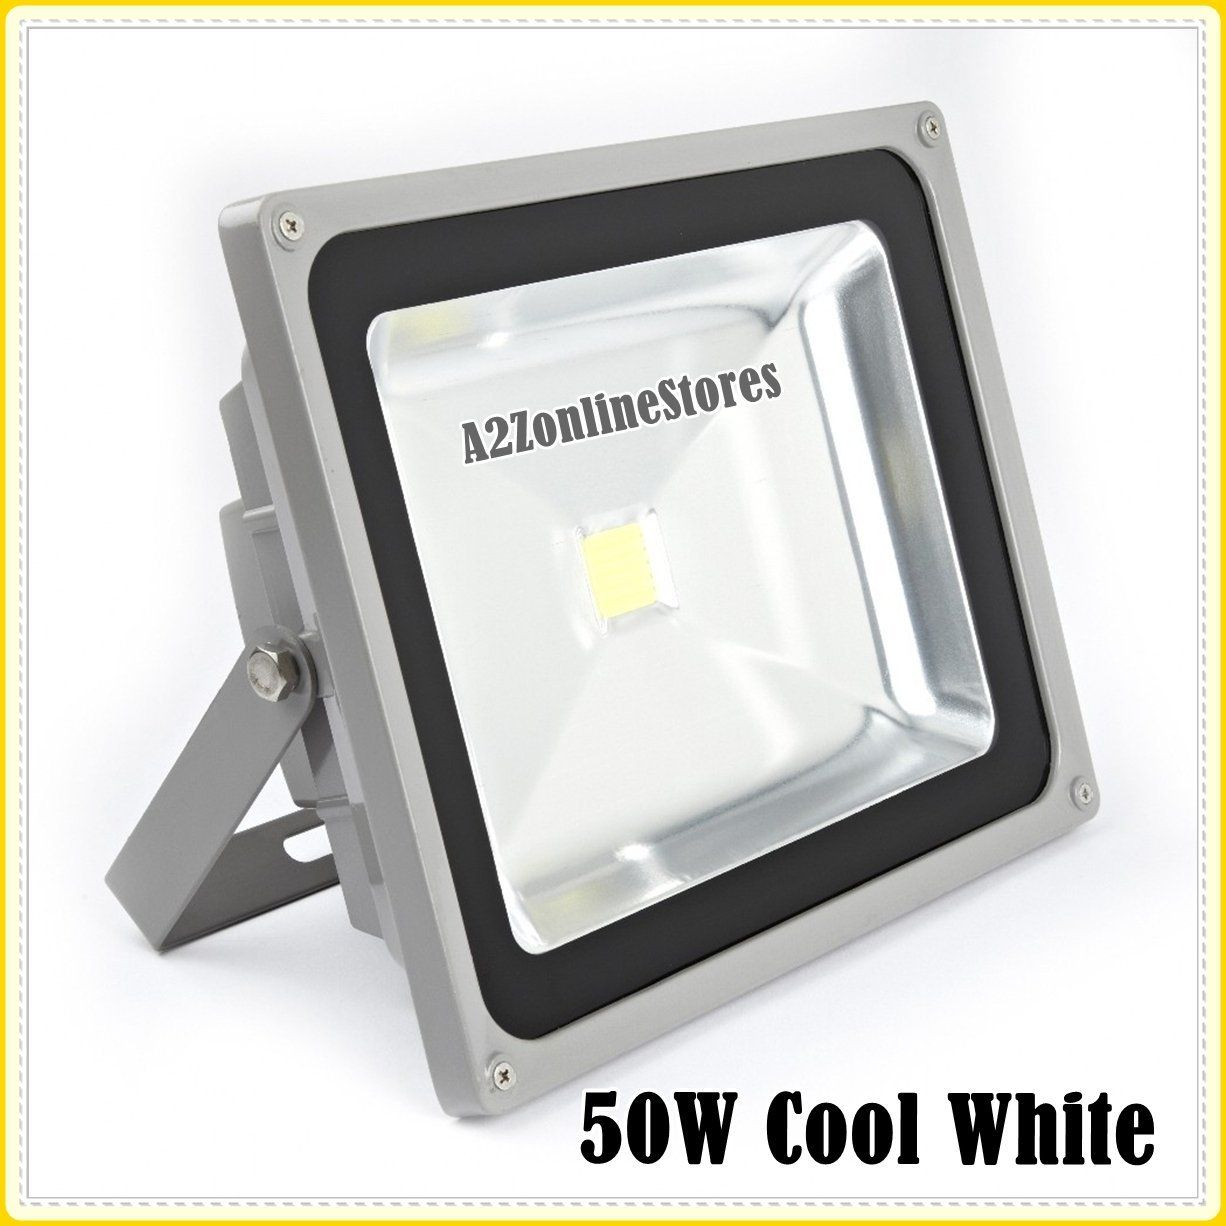 Buy 50W LED Flood Light Cool White Indoor & Outdoor USE